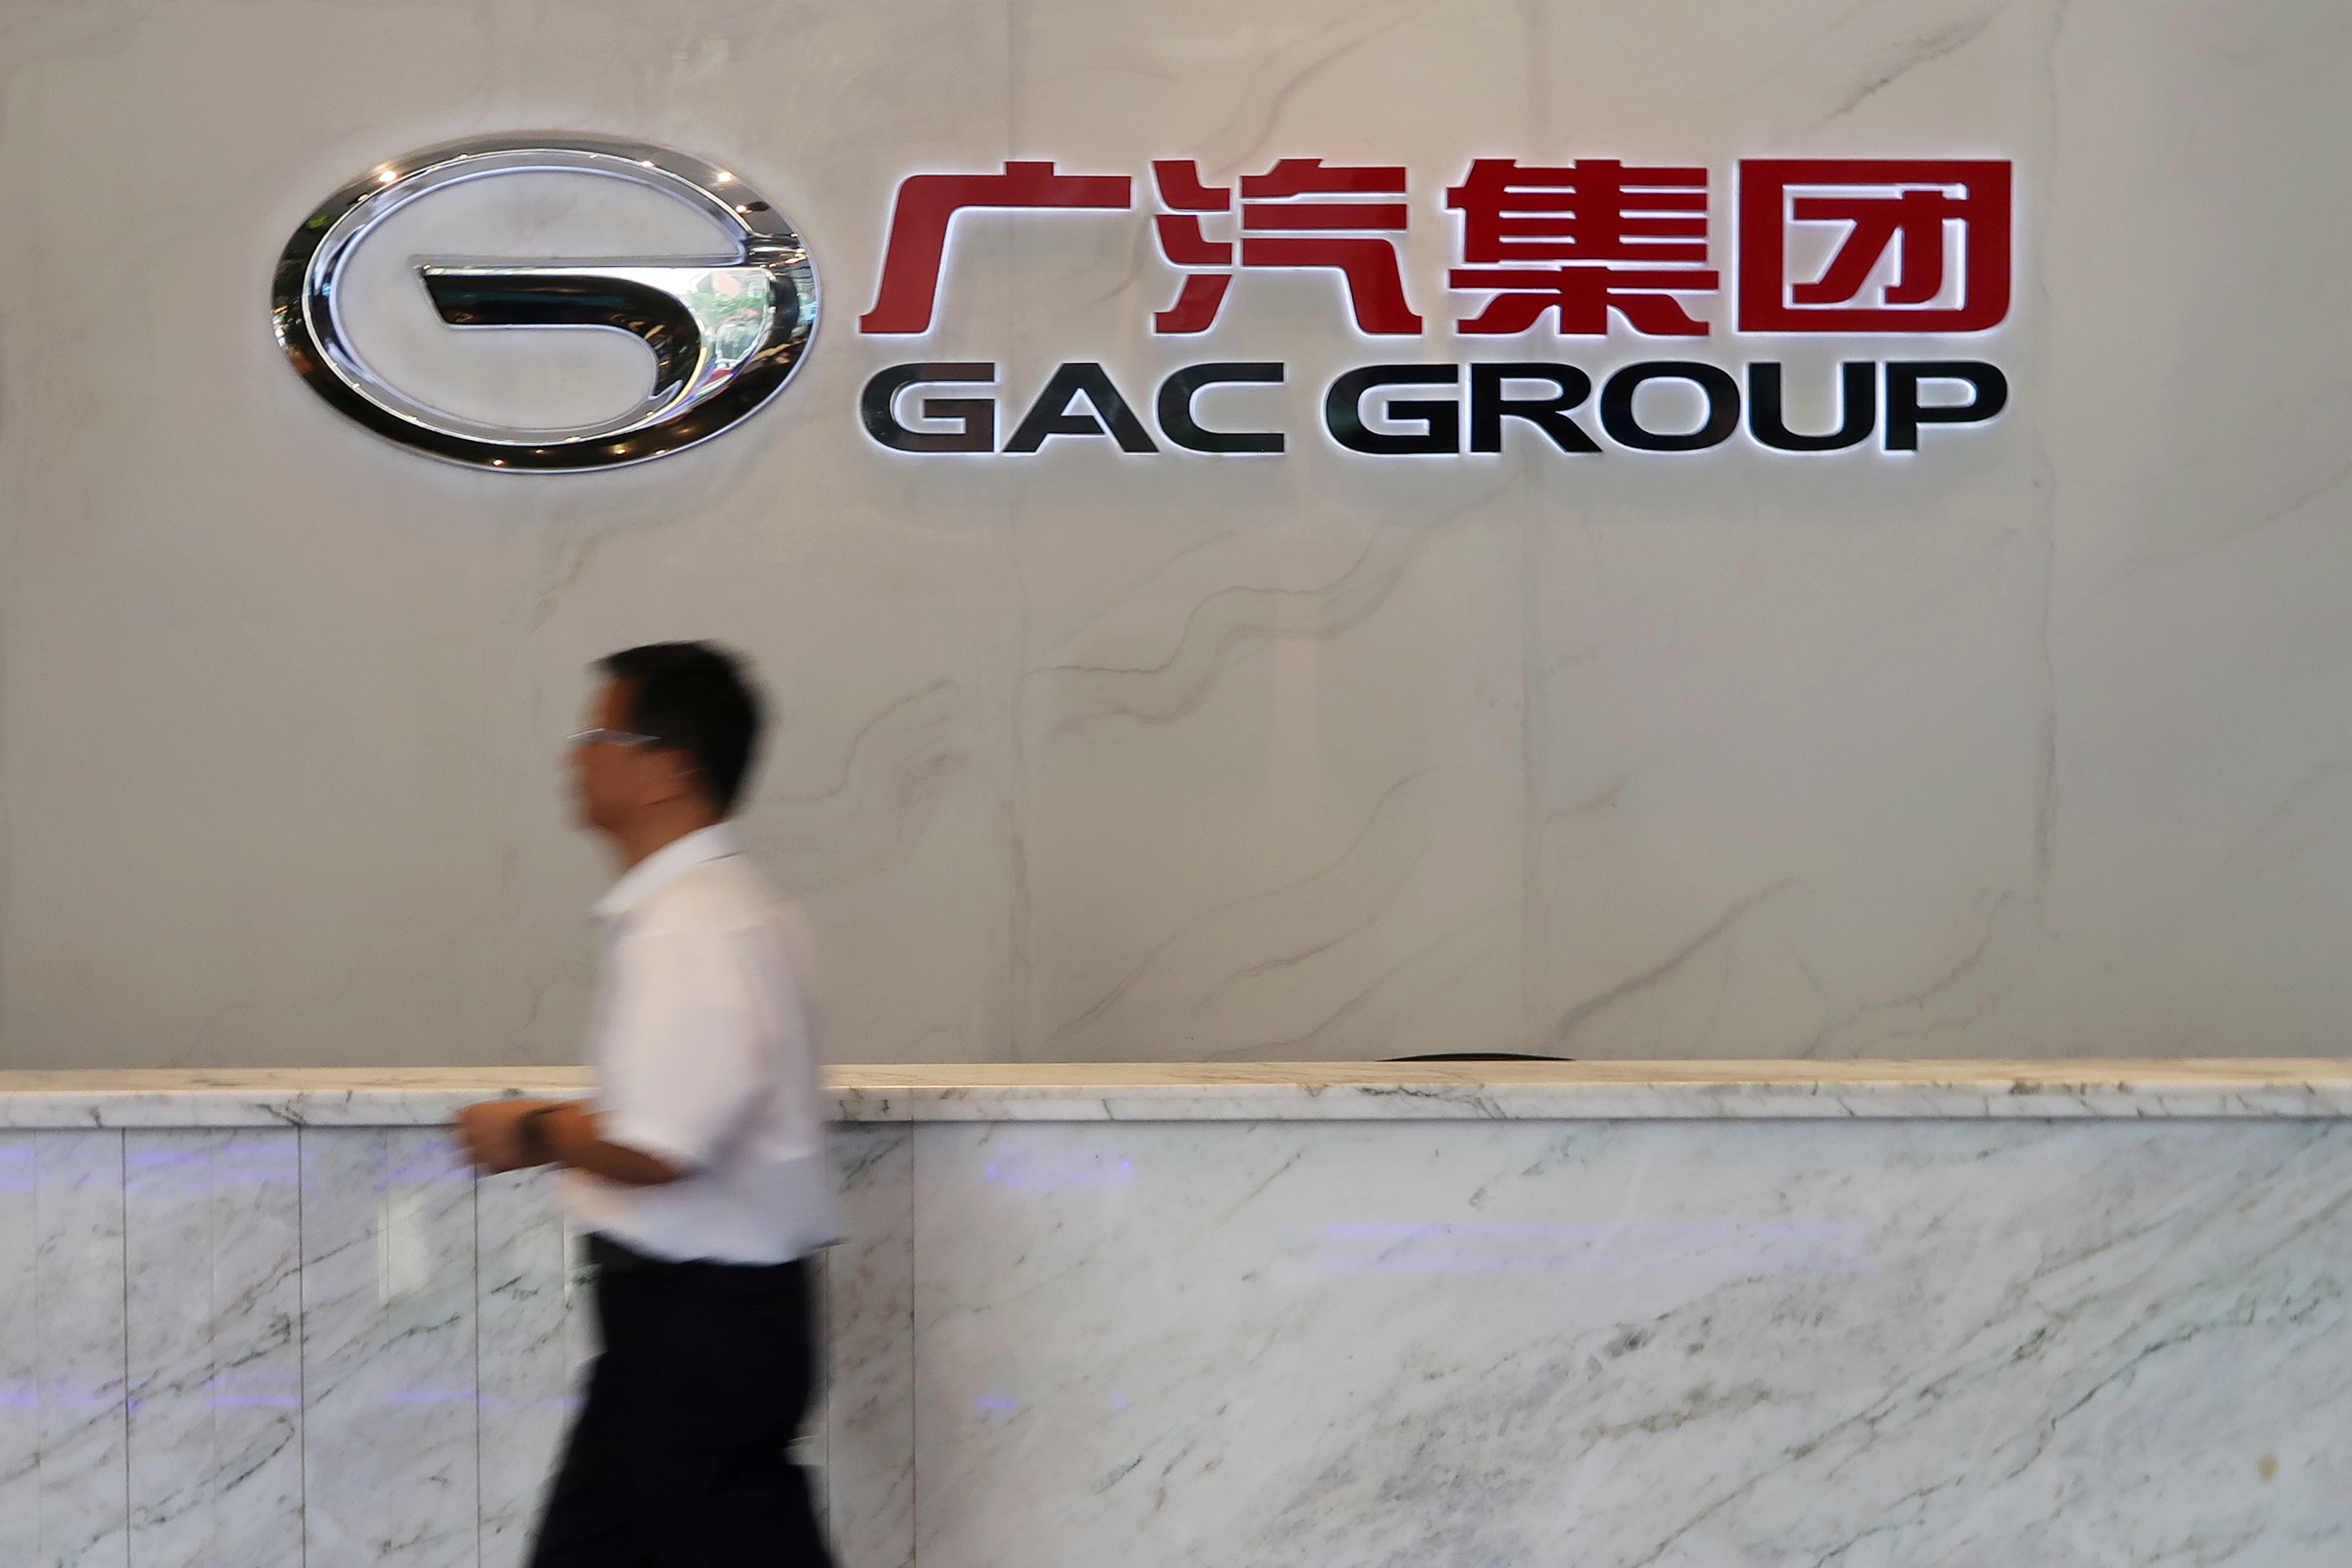 A man walks past the logo of Chinese automobile maker GAC Group at the company headquarters in Guangzhou, Guangdong province, China October 24, 2019. Picture taken October 24, 2019.  REUTERS/Yilei Sun